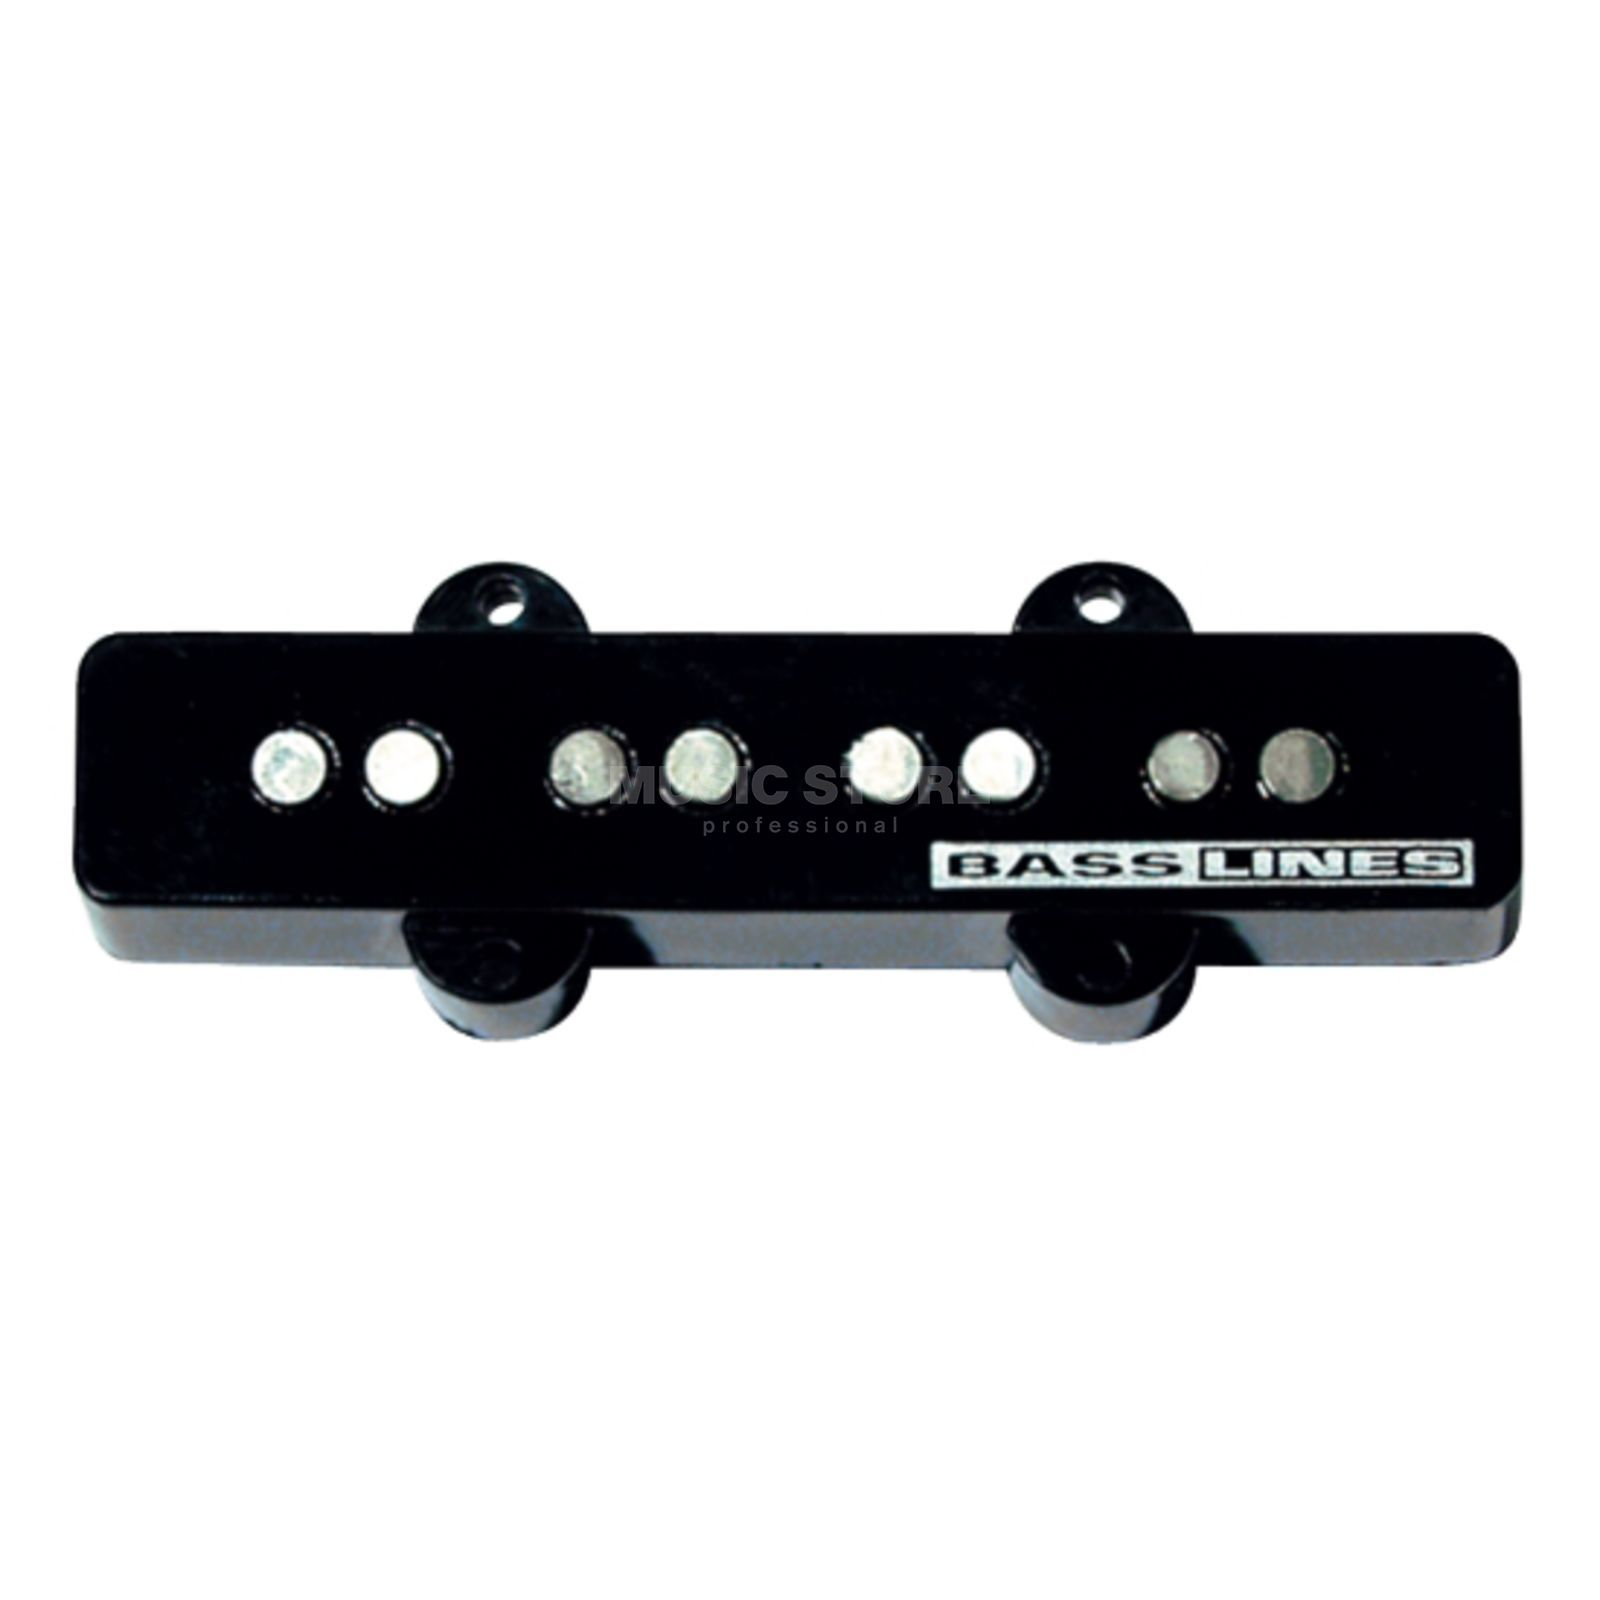 Seymour Duncan Hot J-Bass Stack STK-J2B Bridge Produktbild